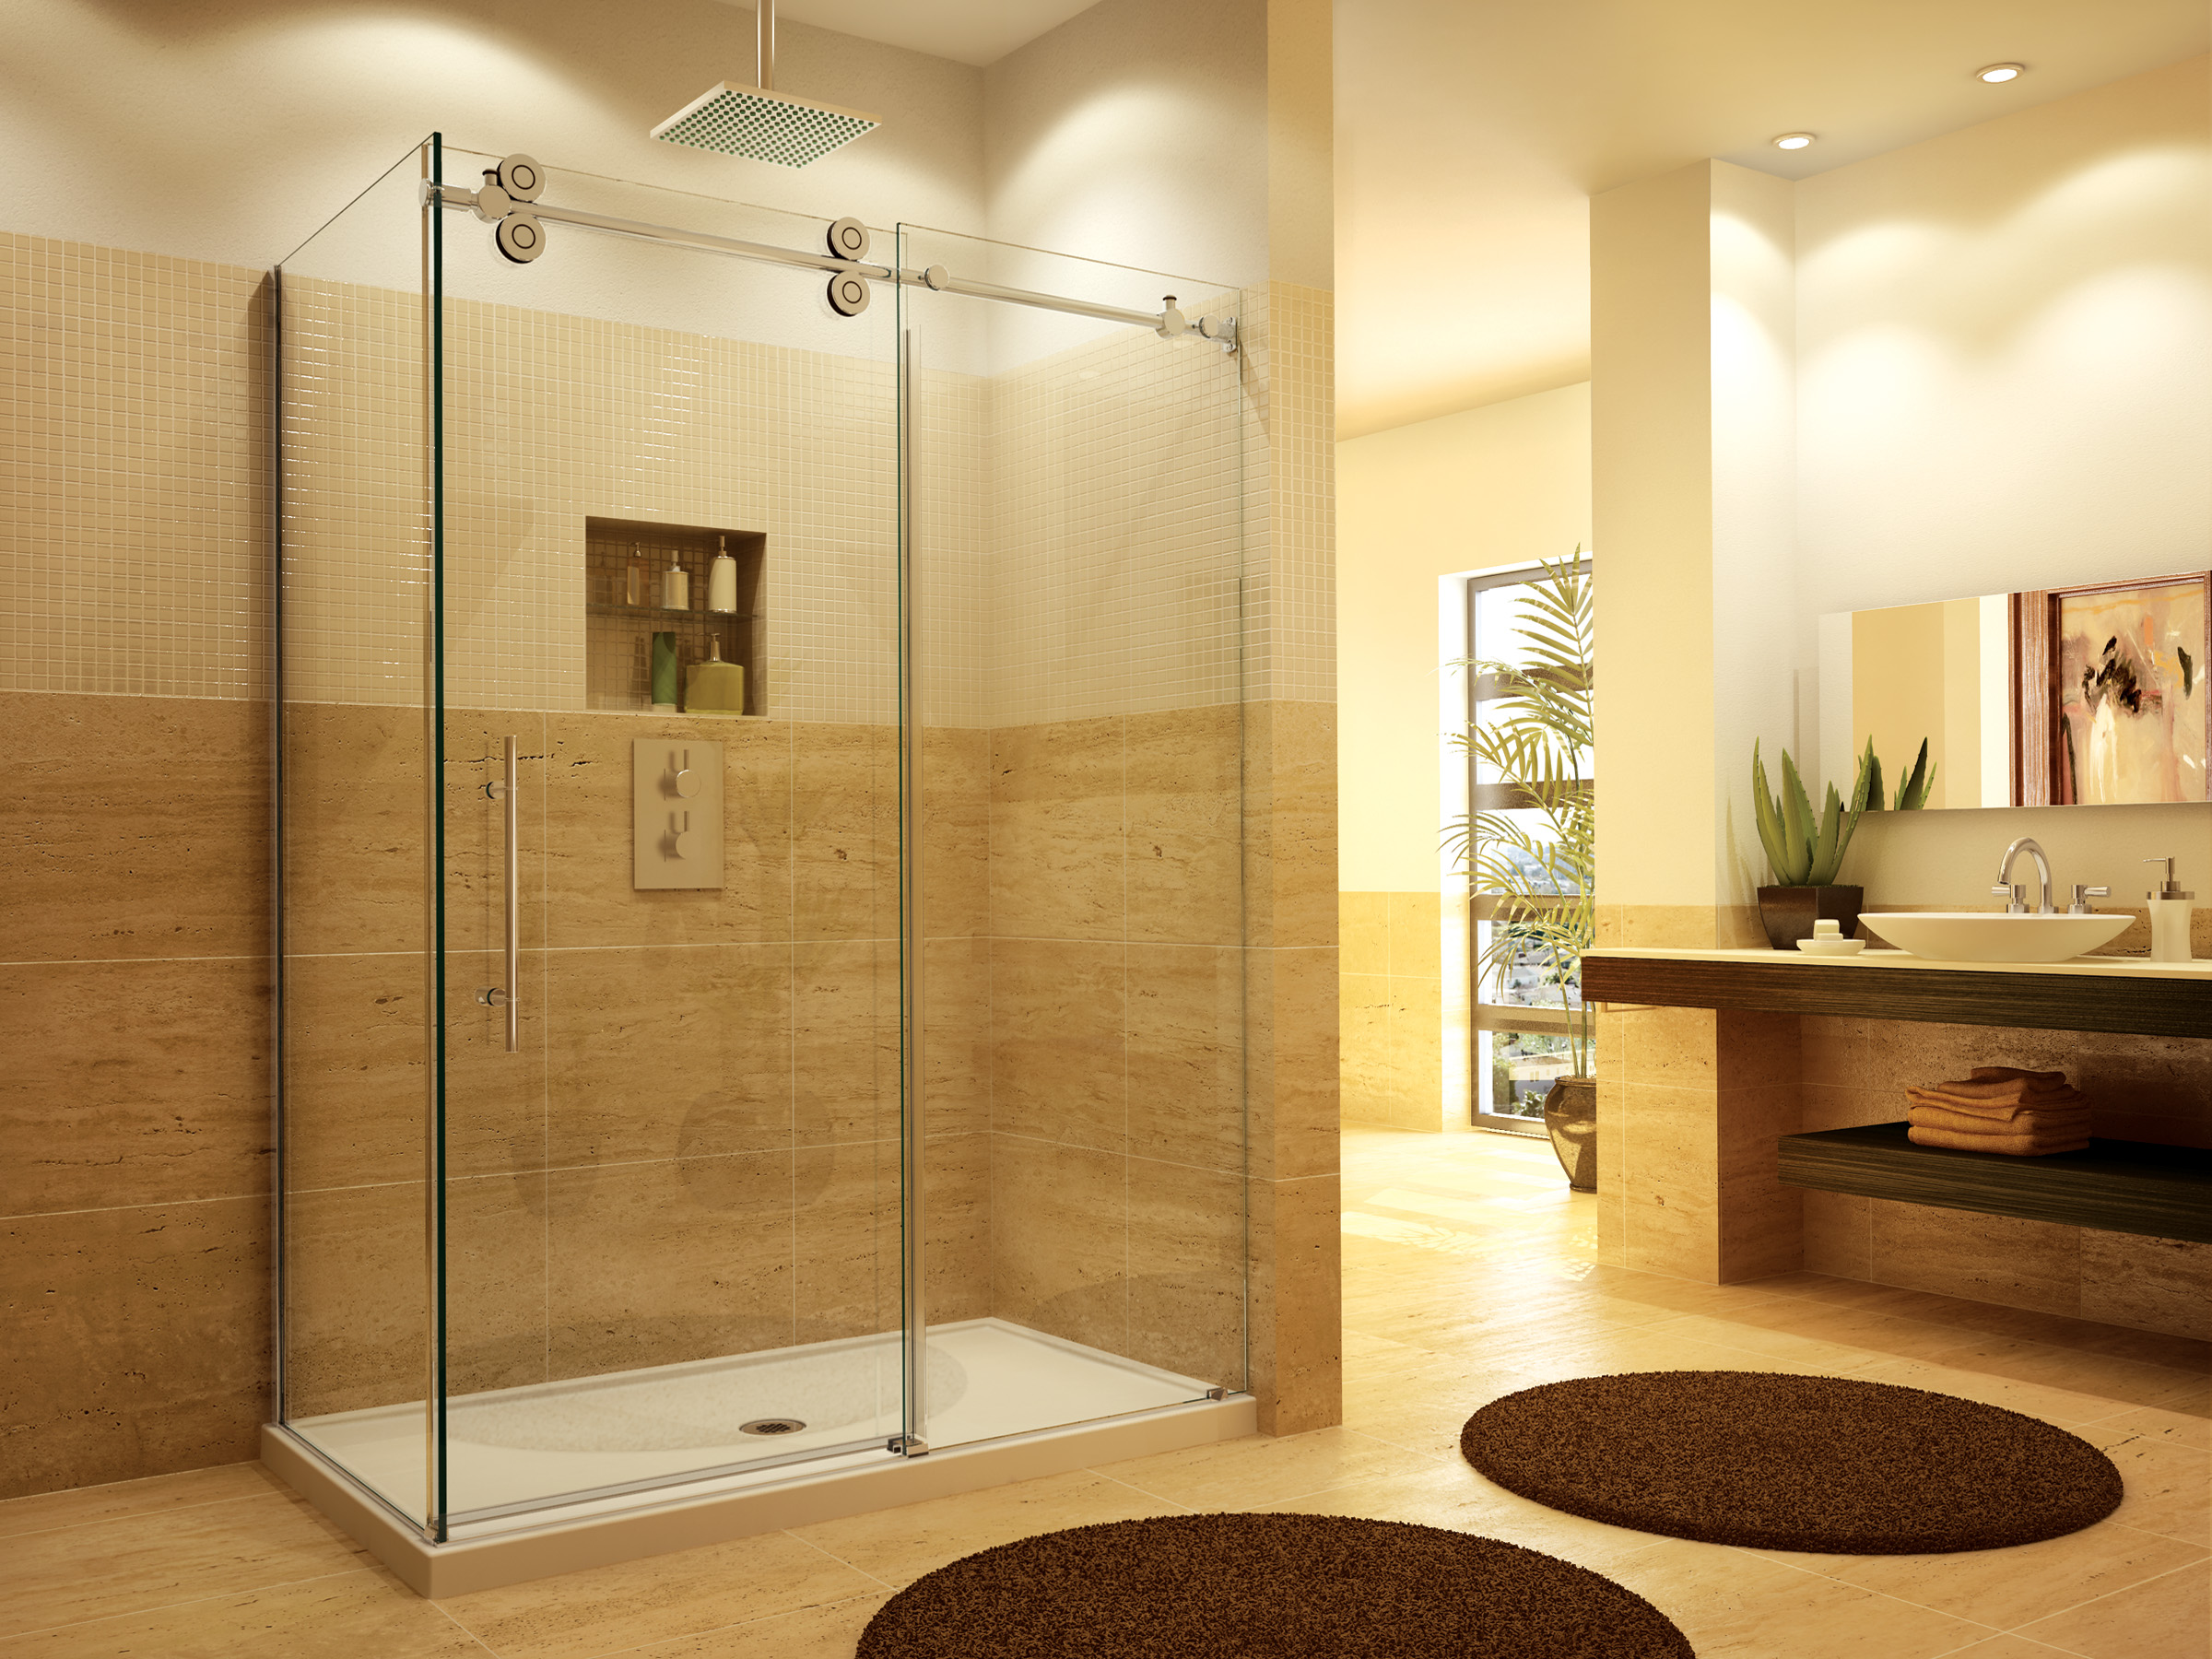 glass shower door installation in franklin lakes nj glass. Black Bedroom Furniture Sets. Home Design Ideas